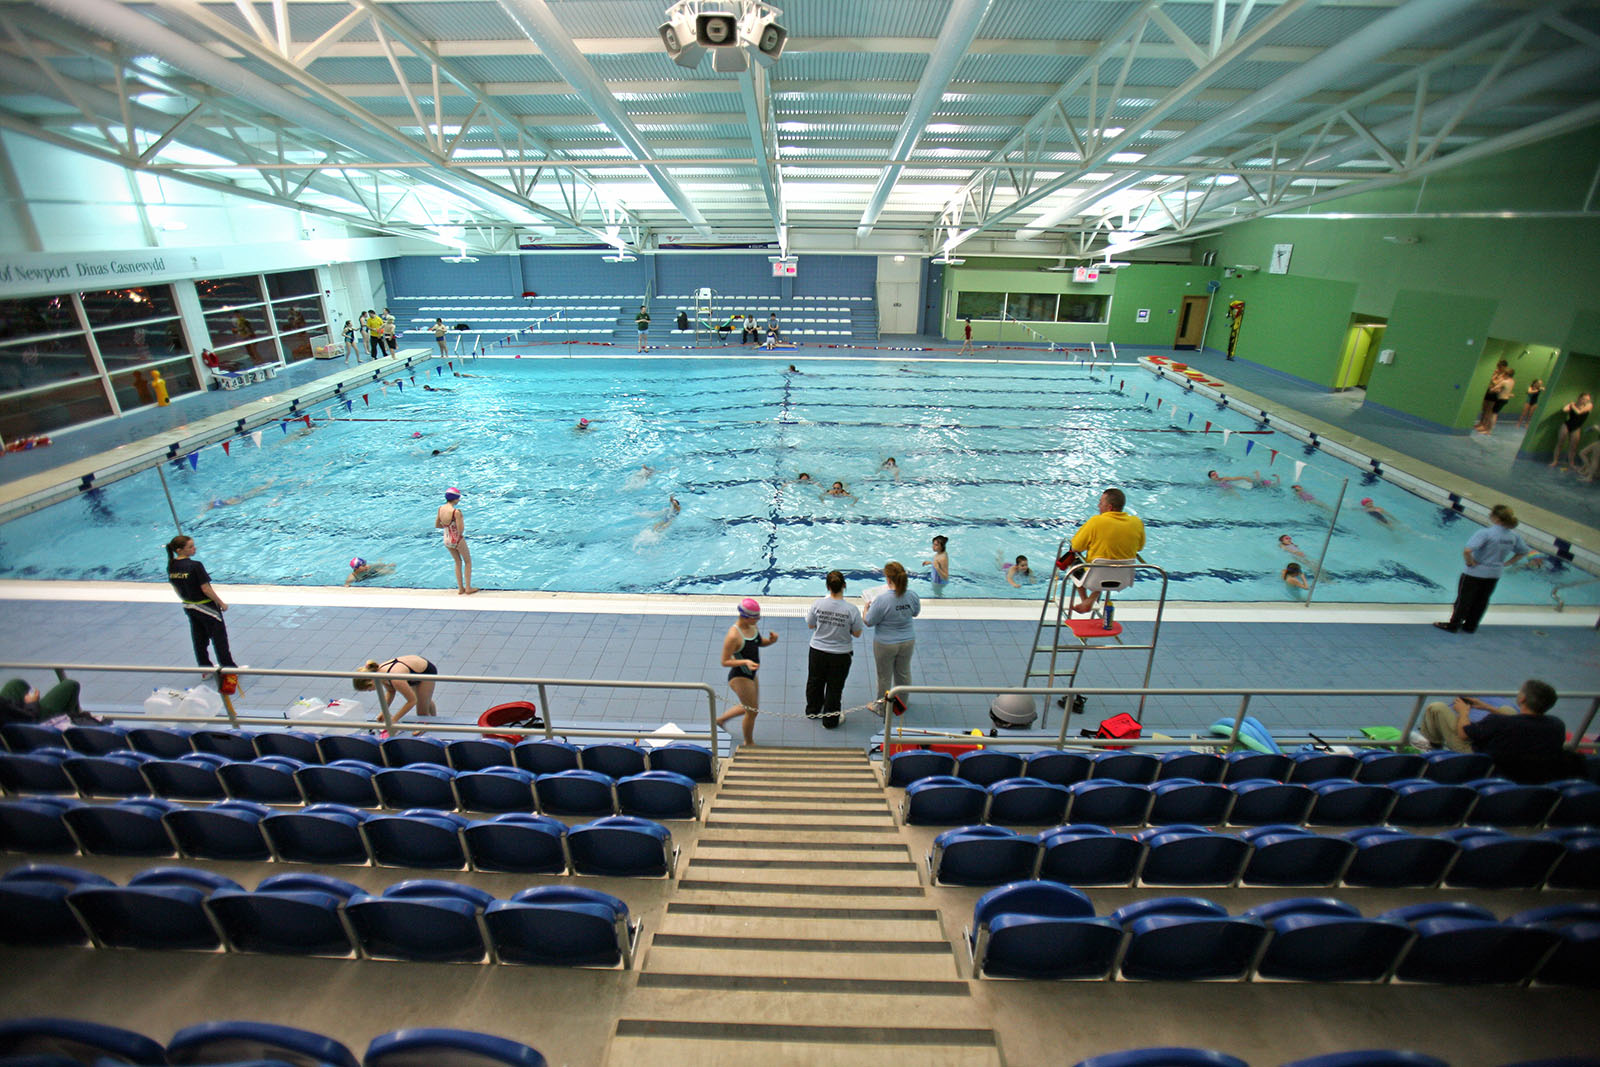 Regional Pool and Tennis Centre